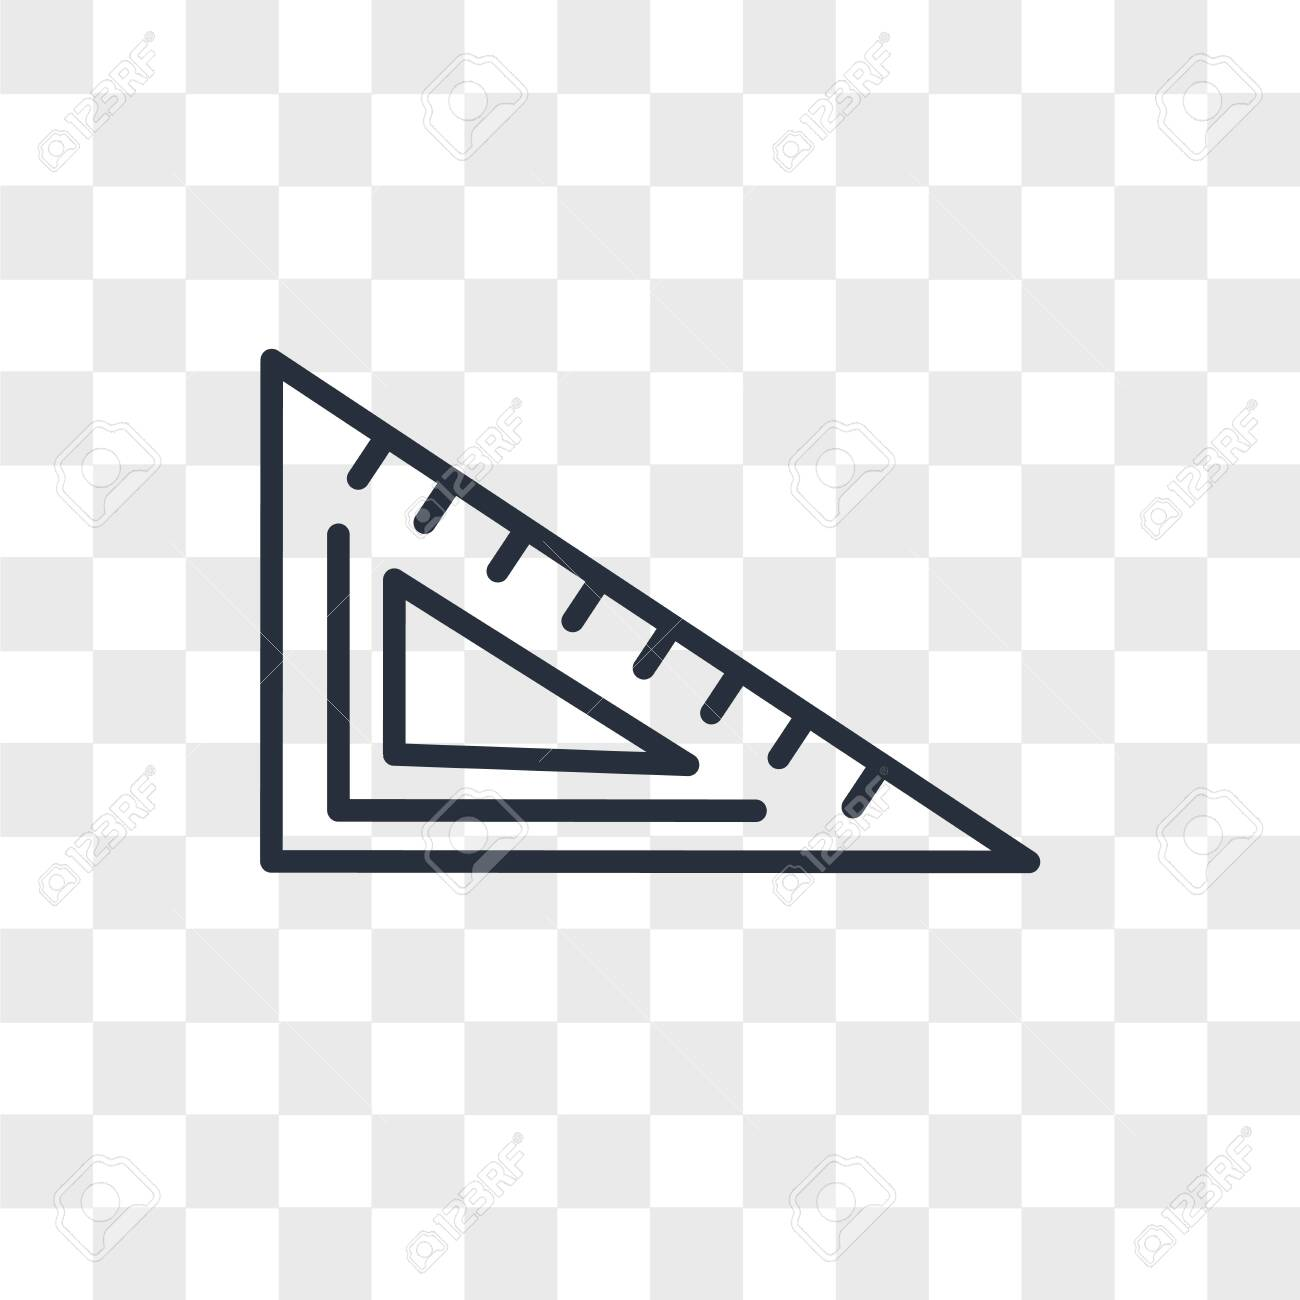 Protractor vector icon isolated on transparent background, Protractor logo concept - 150640947